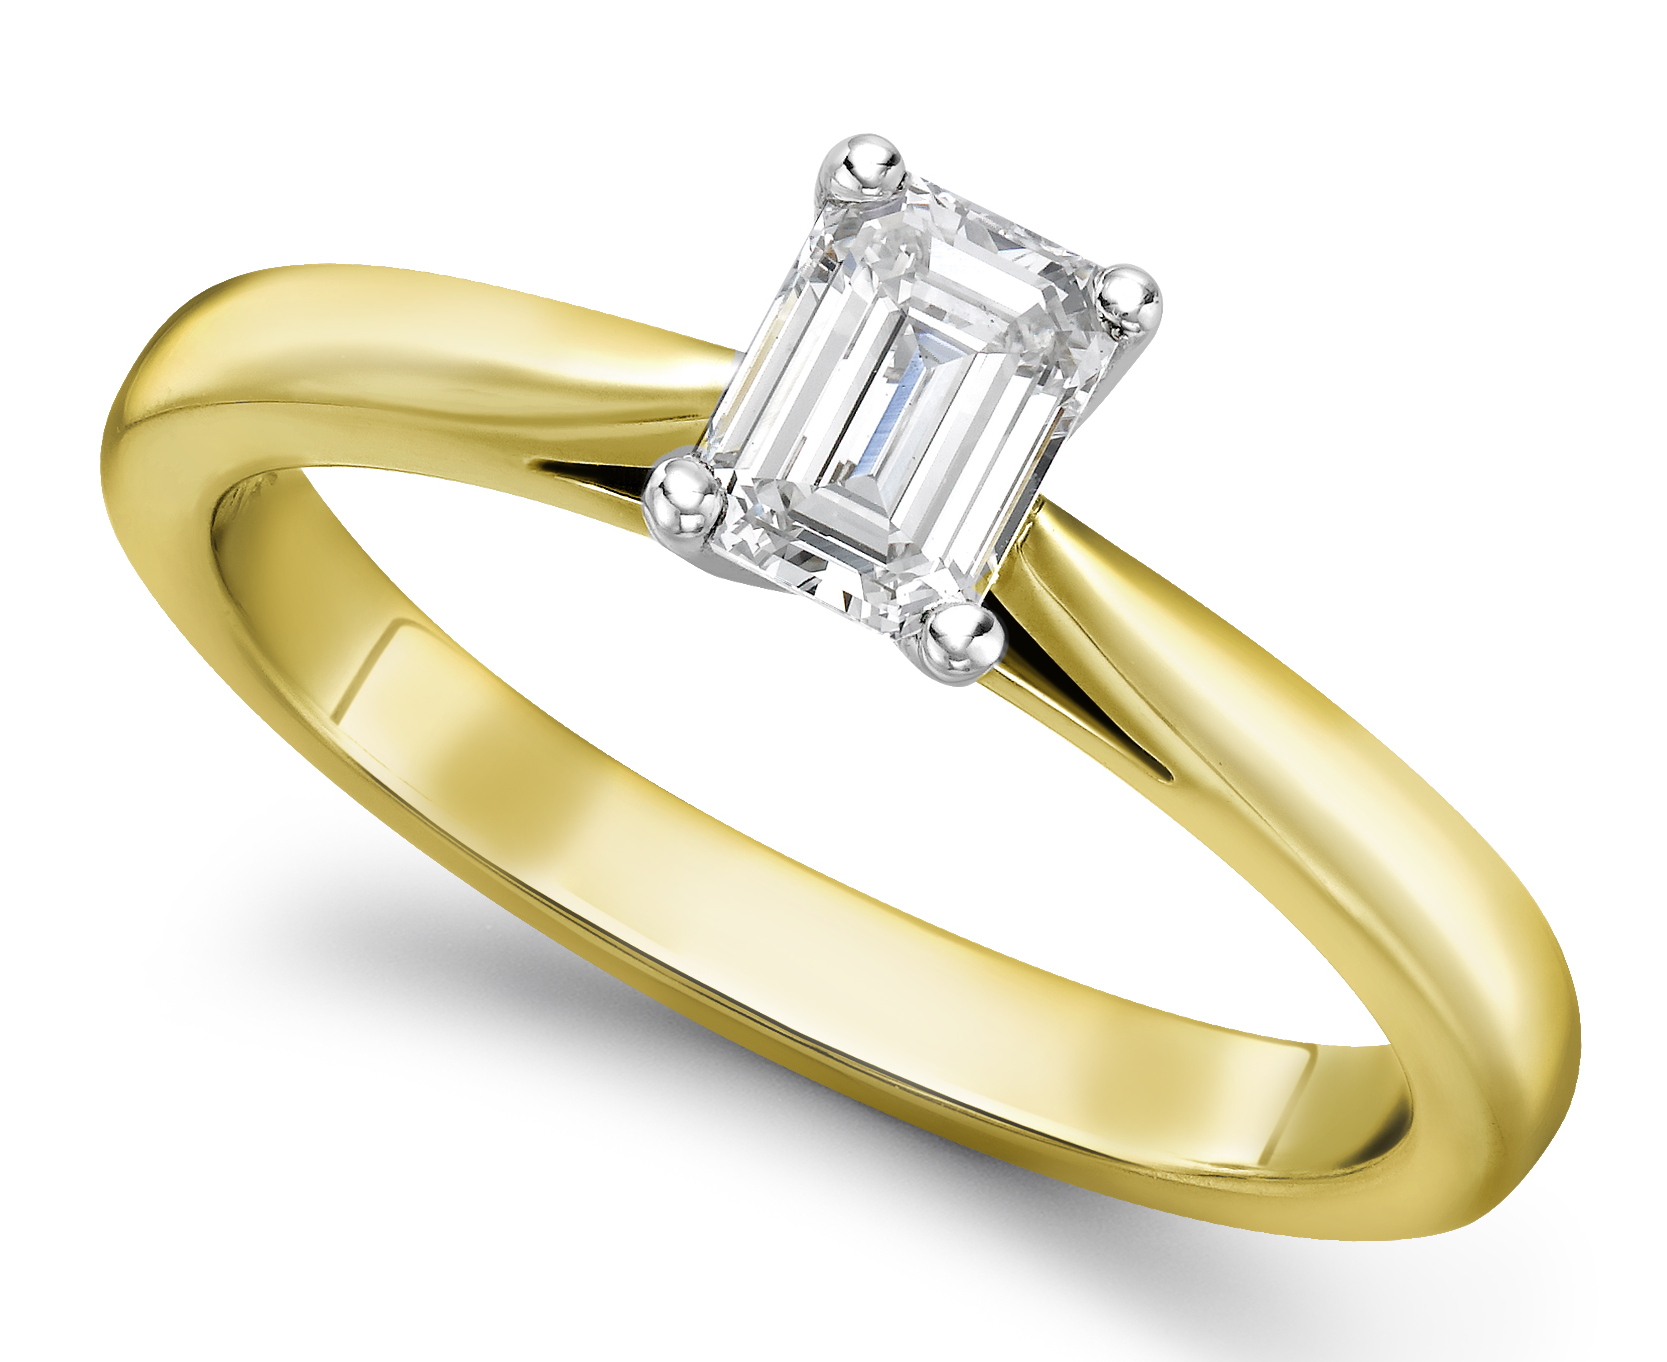 emerald cut yellow gold engagement ring grc688yg 115